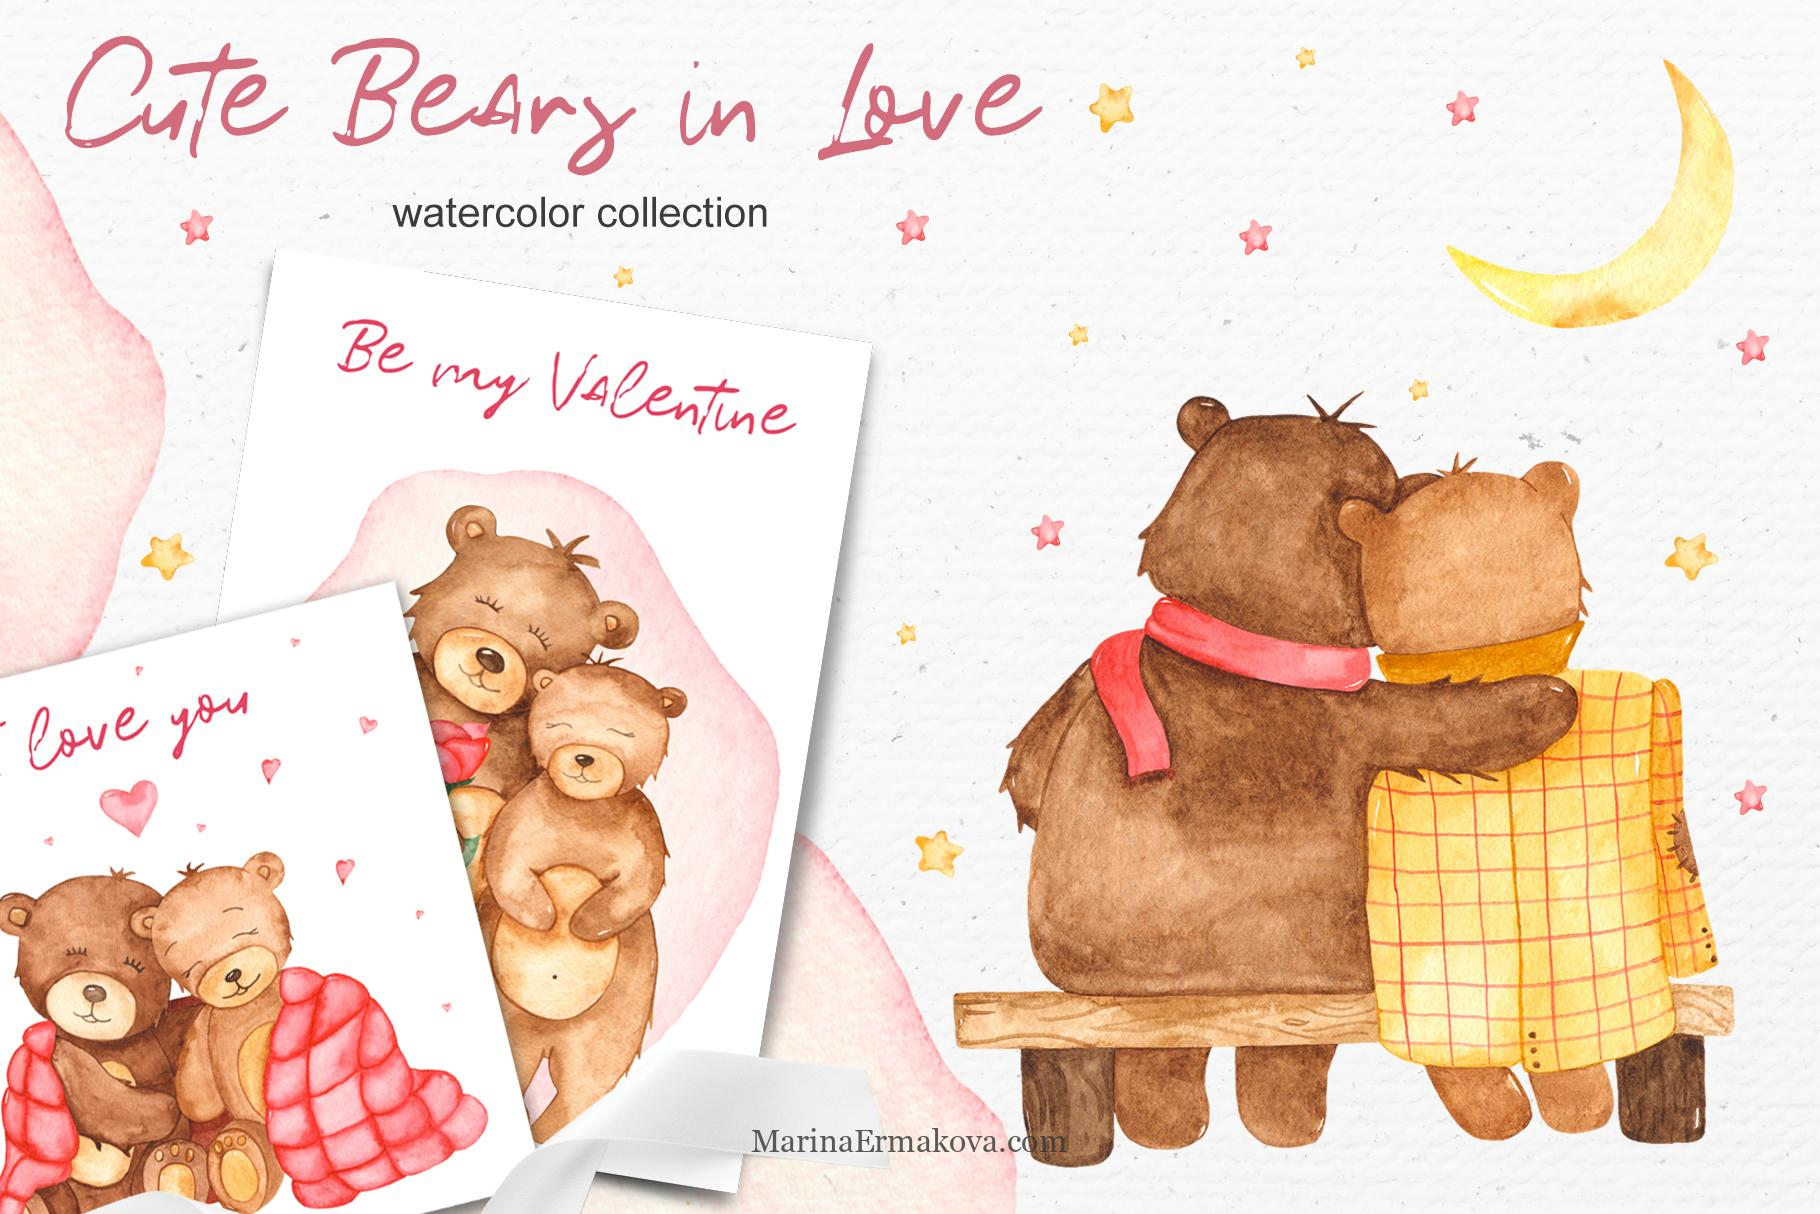 Cute bears in love watercolor